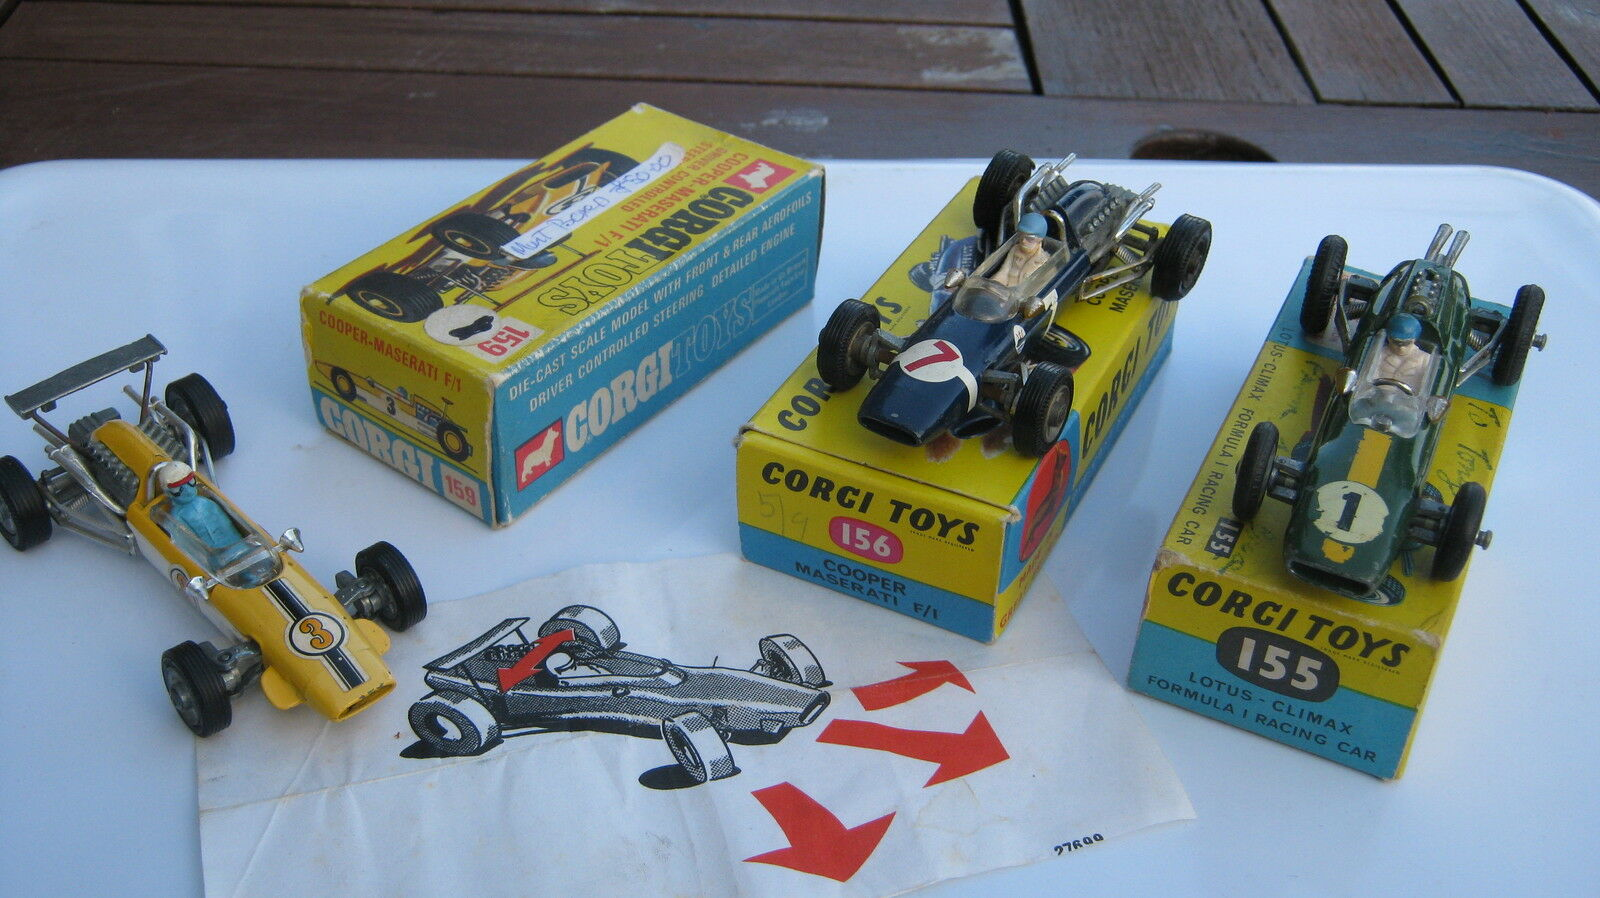 CORGI  155 156 159 ORIGINAL 1960s RACING CARS CARS CARS ALL GOOD IN GOOD ORIGINAL BOXES. b80139